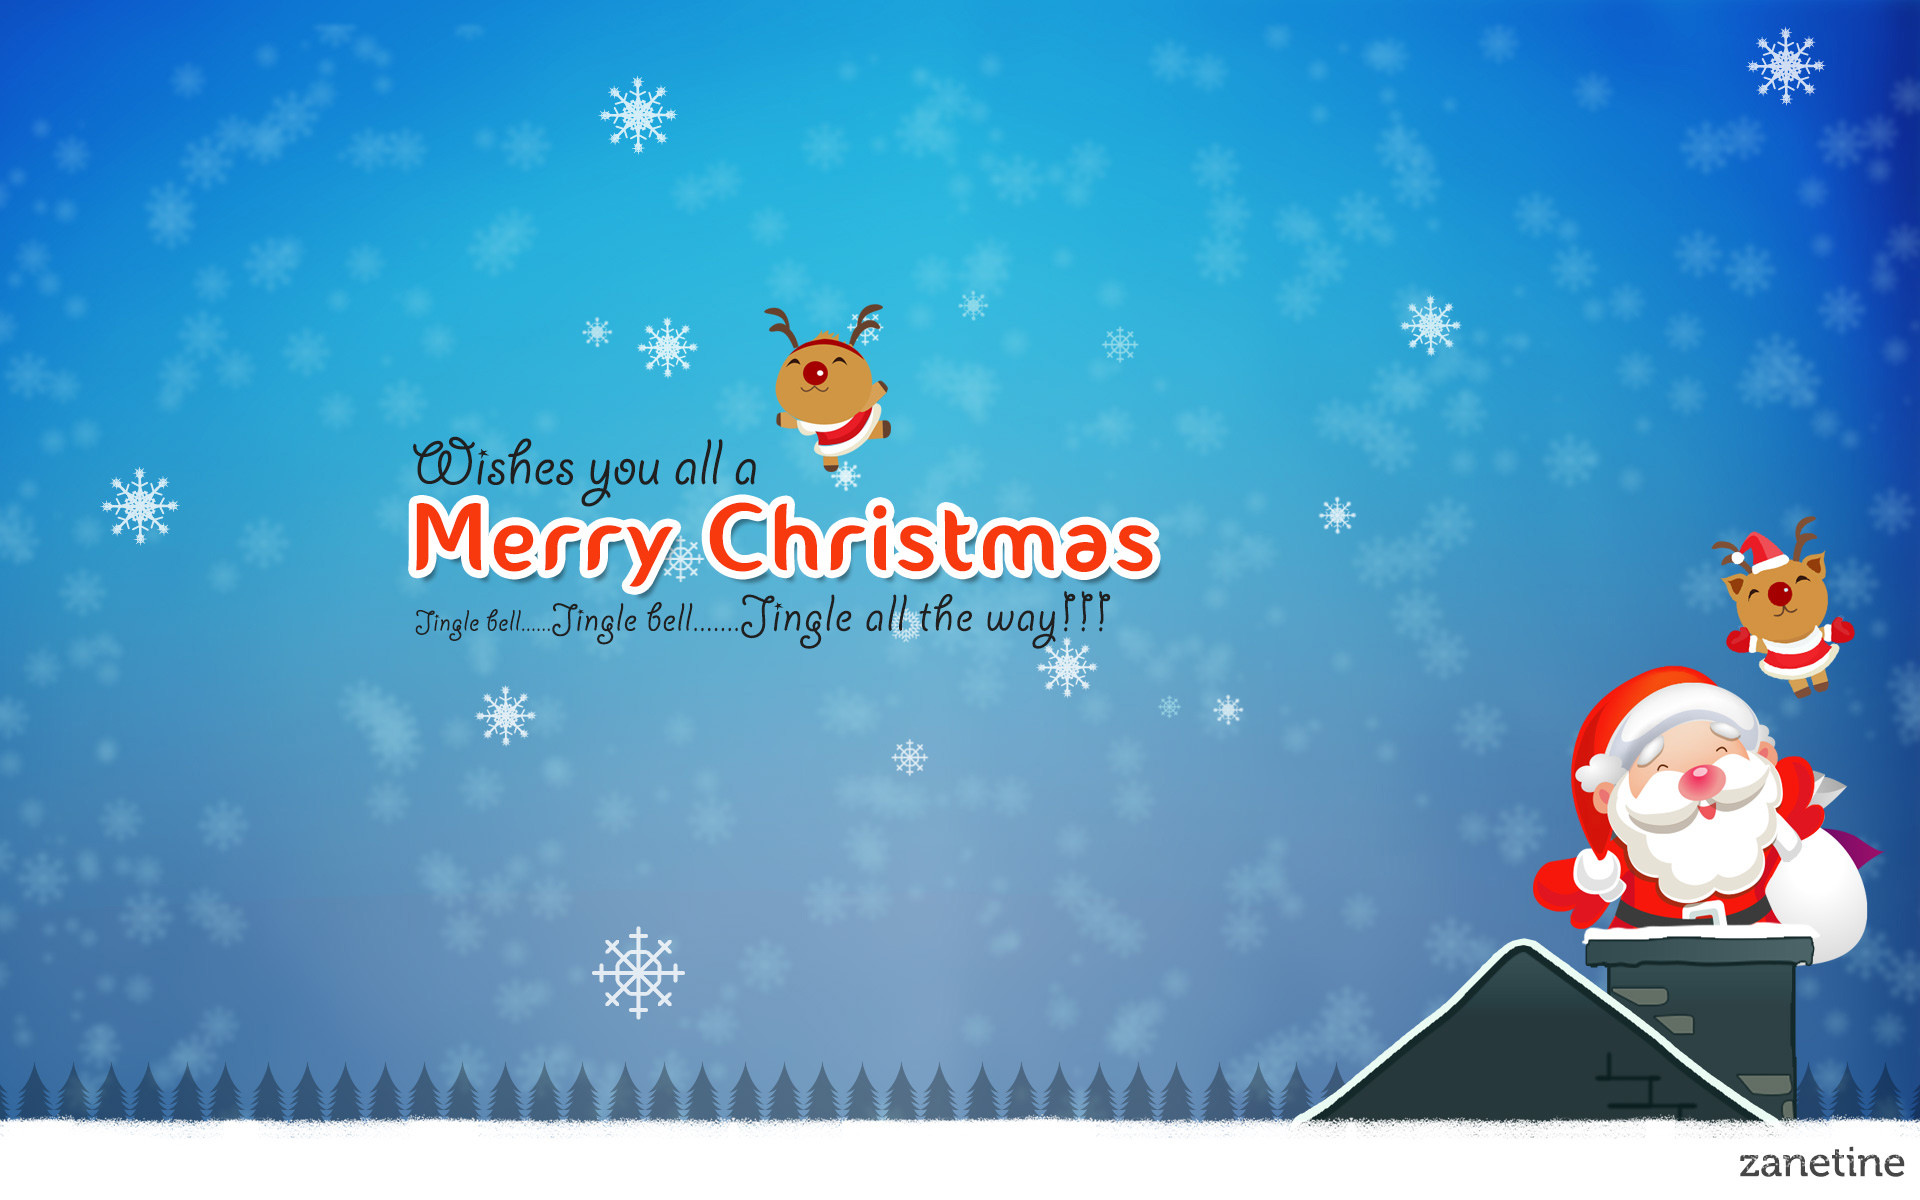 Res: 1920x1200, wish-you-all-a-merry-christmas